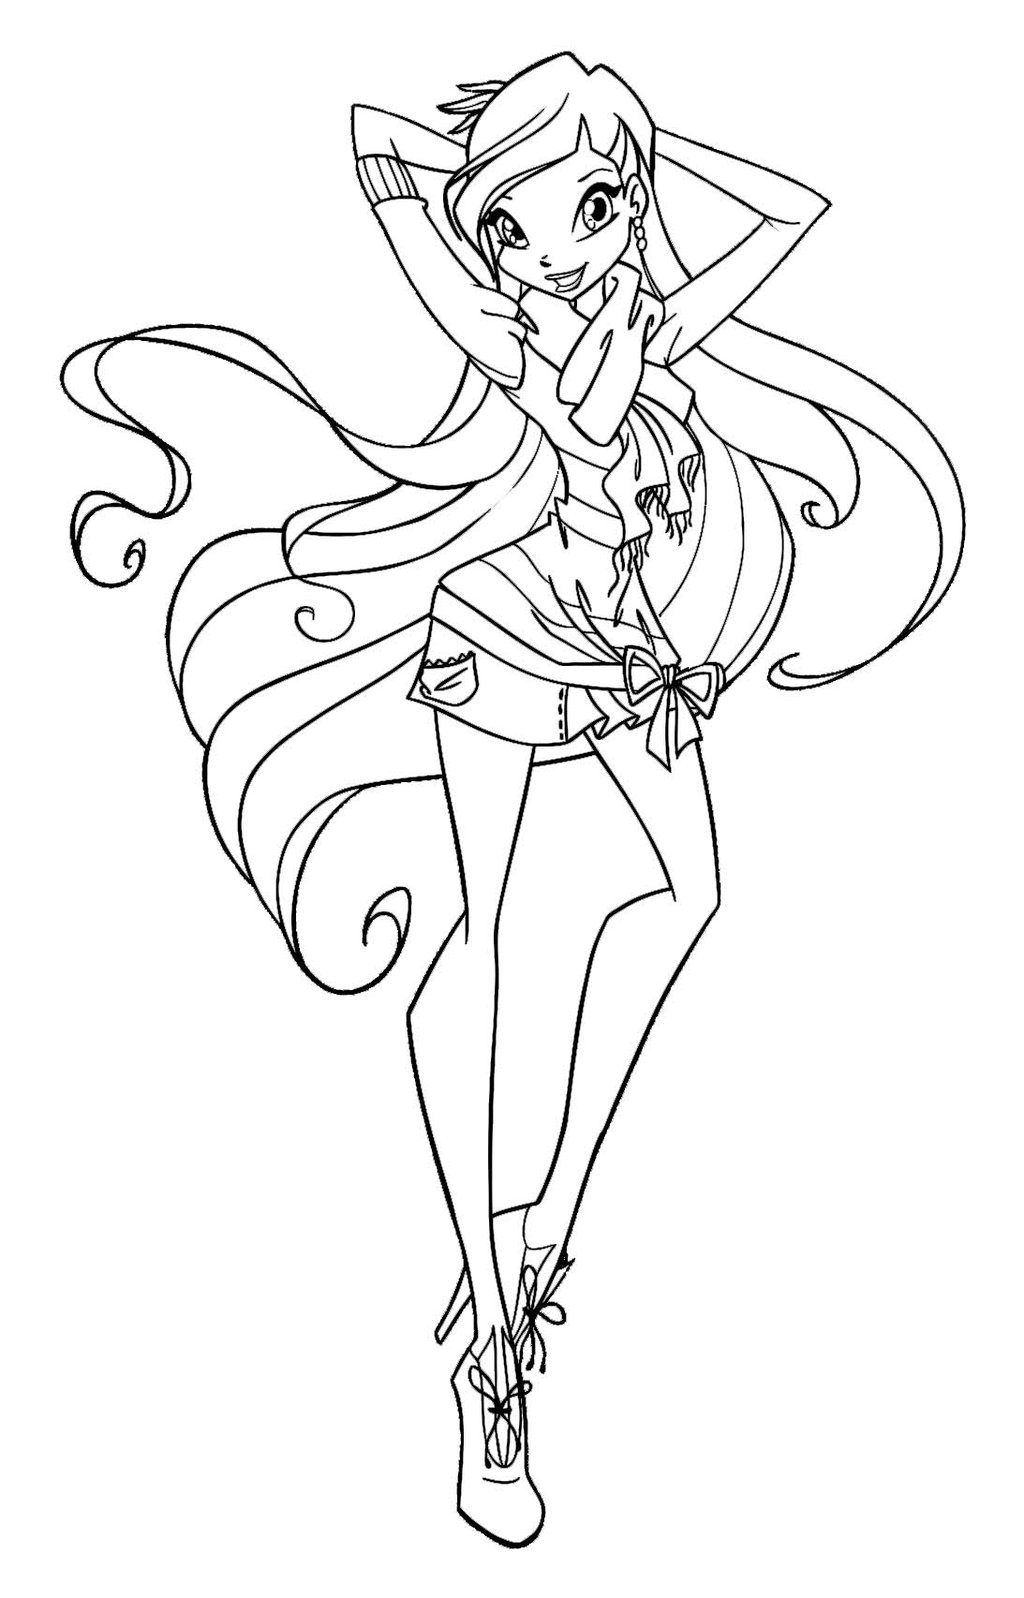 Winx Club Sirenix Coloring Pages